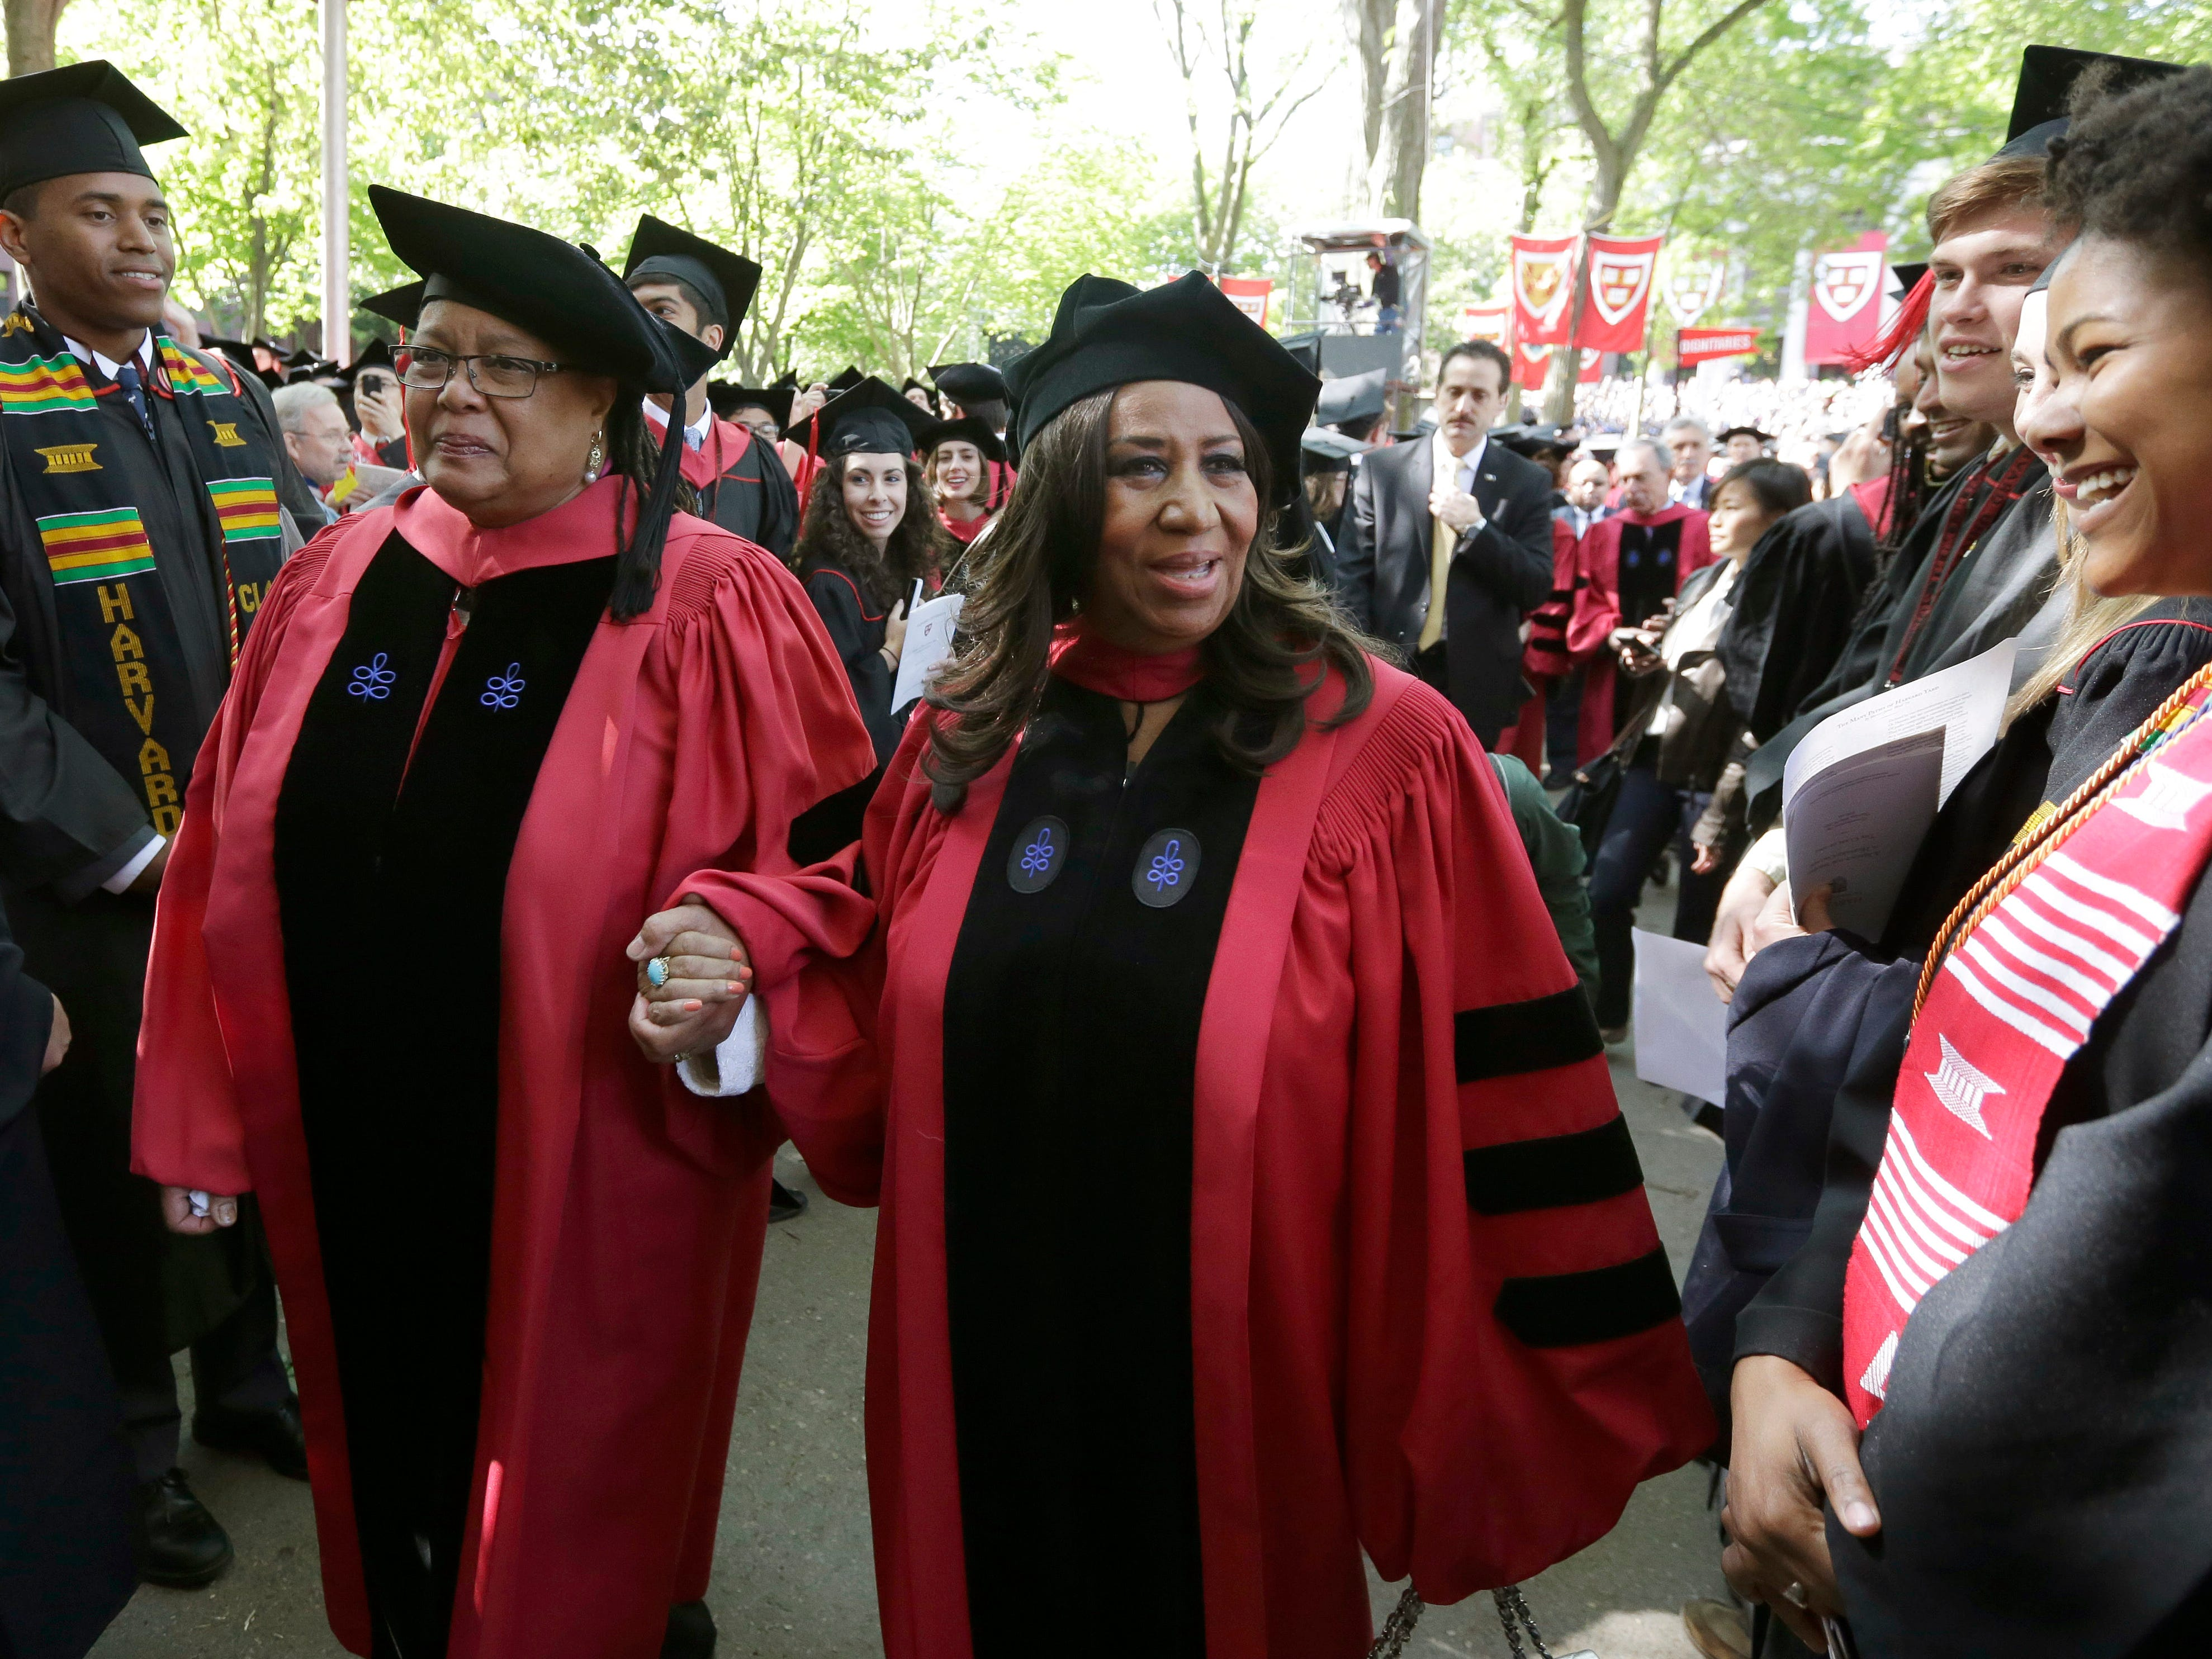 Singer Aretha Franklin, center, walks in a procession during Harvard University commencement ceremonies, Thursday, May 29, 2014, in Cambridge, Mass. Franklin was presented with an honorary Doctor of Arts degree during the ceremony. (AP Photo/Steven Senne) ORG XMIT: o3